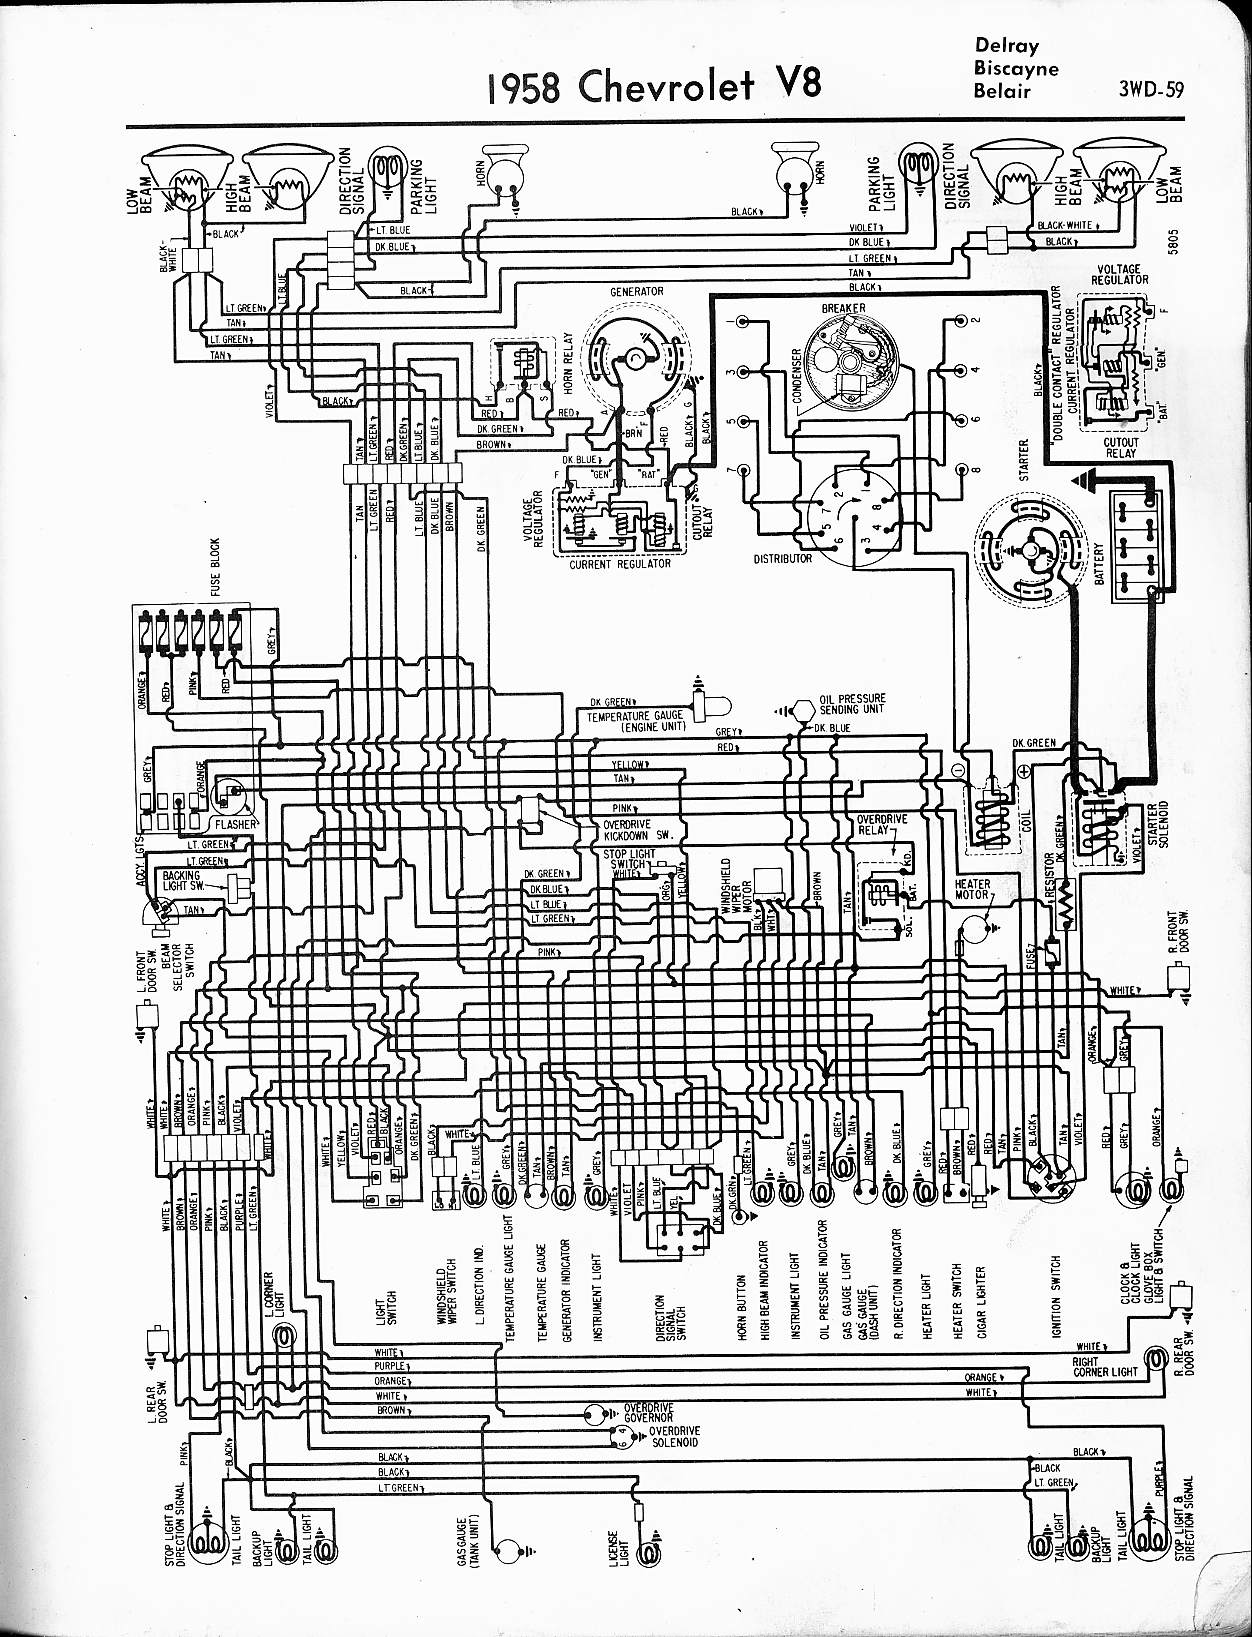 Chevrolet Wiring Diagram Everything About Chevy Aveo Diagrams 57 65 Rh Oldcarmanualproject Com Gm Free